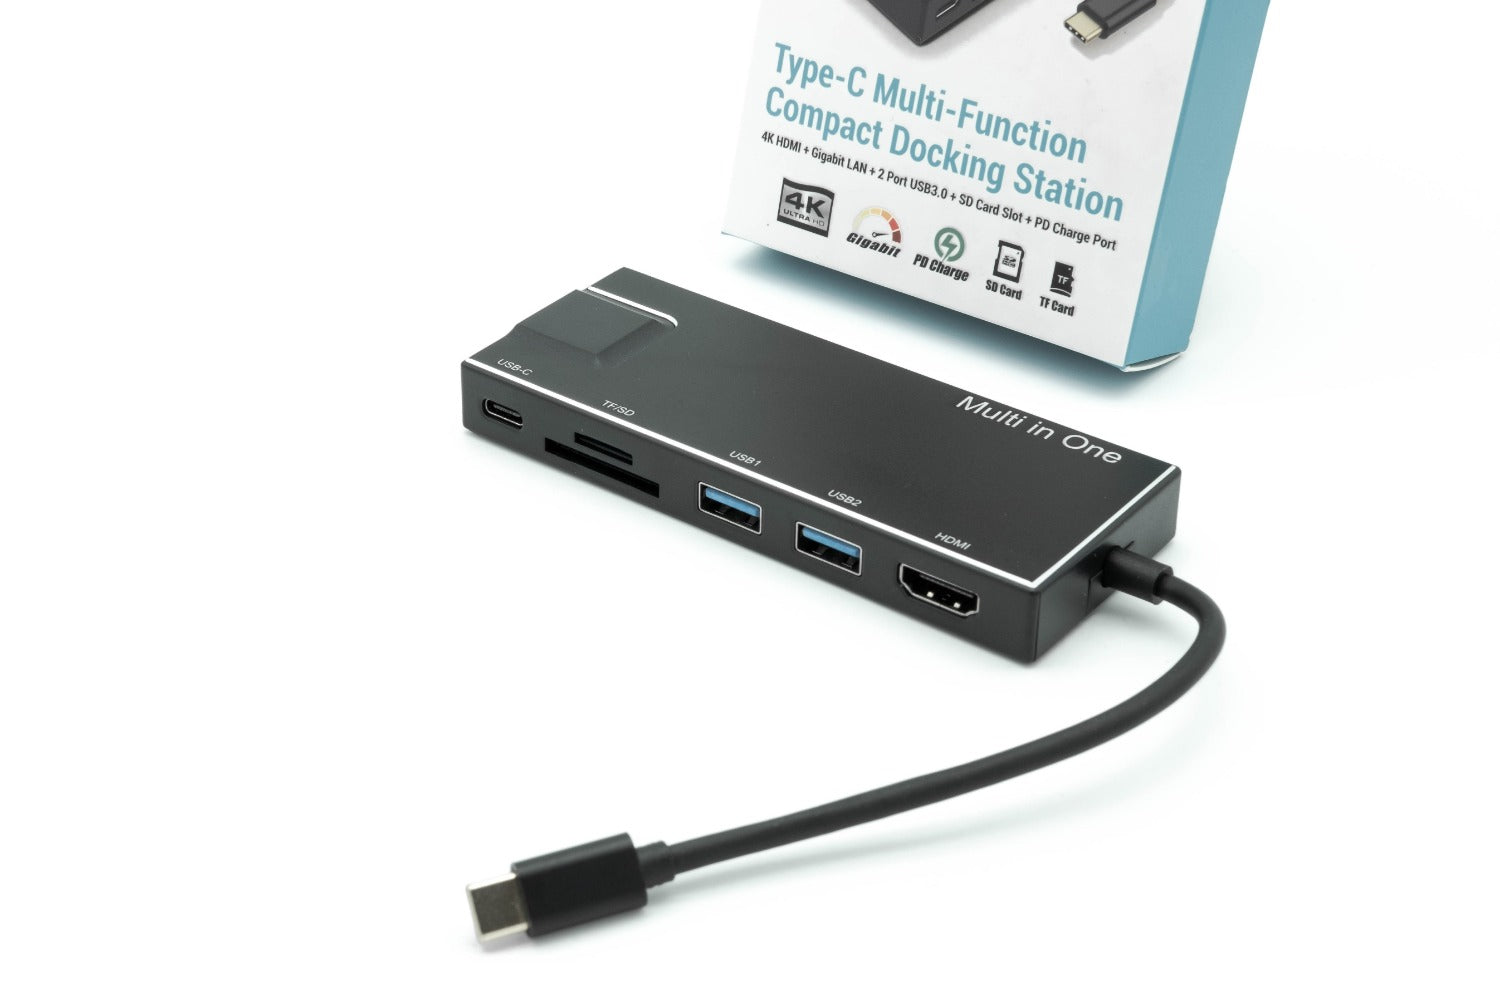 Dynamode C-TC-DK-HDMICR USB Type-C Multifunction Docking Station